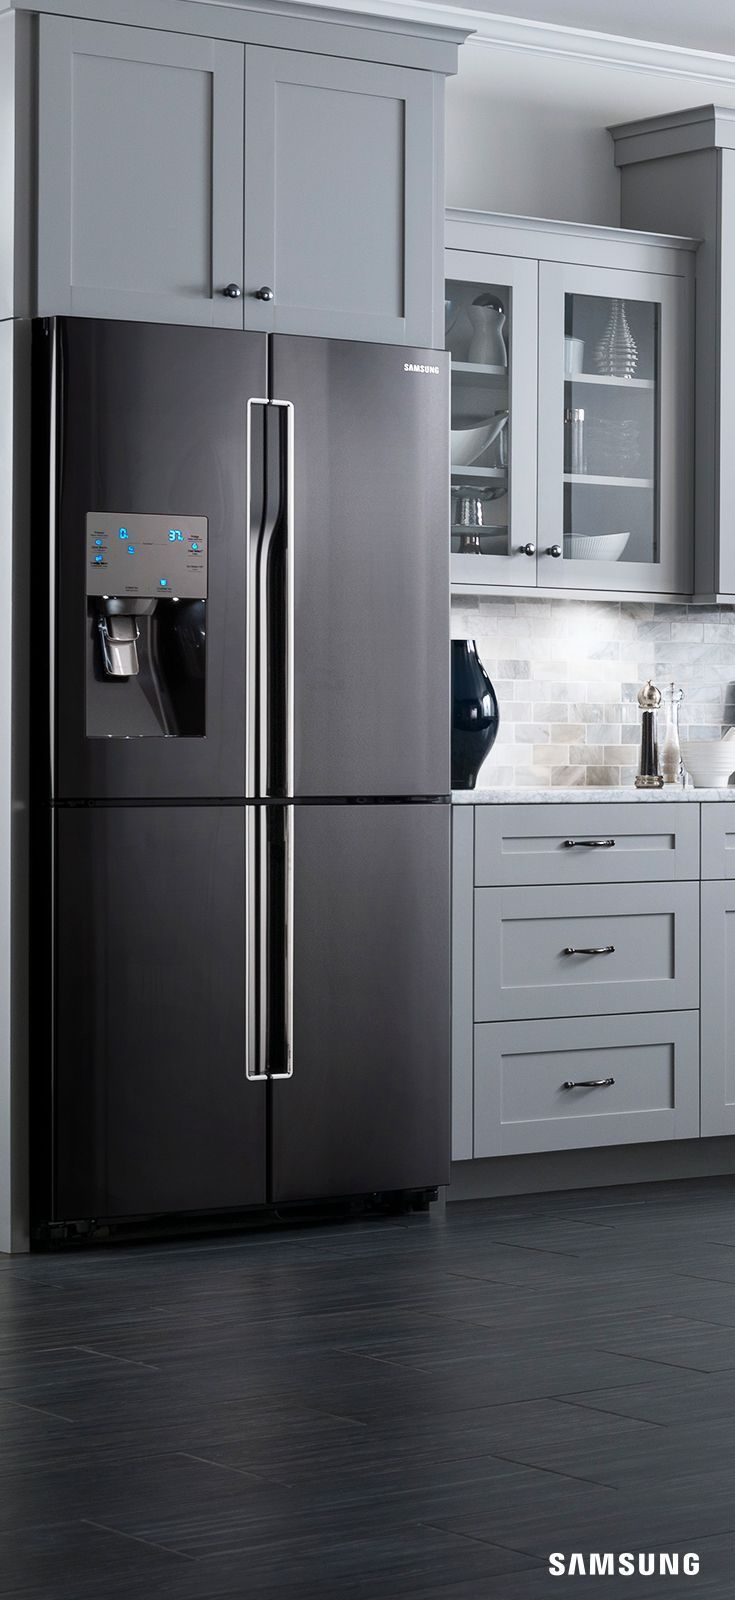 Best 25+ Kitchen Black Appliances Ideas On Pinterest | Black Appliances  White Cabinets, Kitchen With Black Appliances And Hanging Kitchen Lights